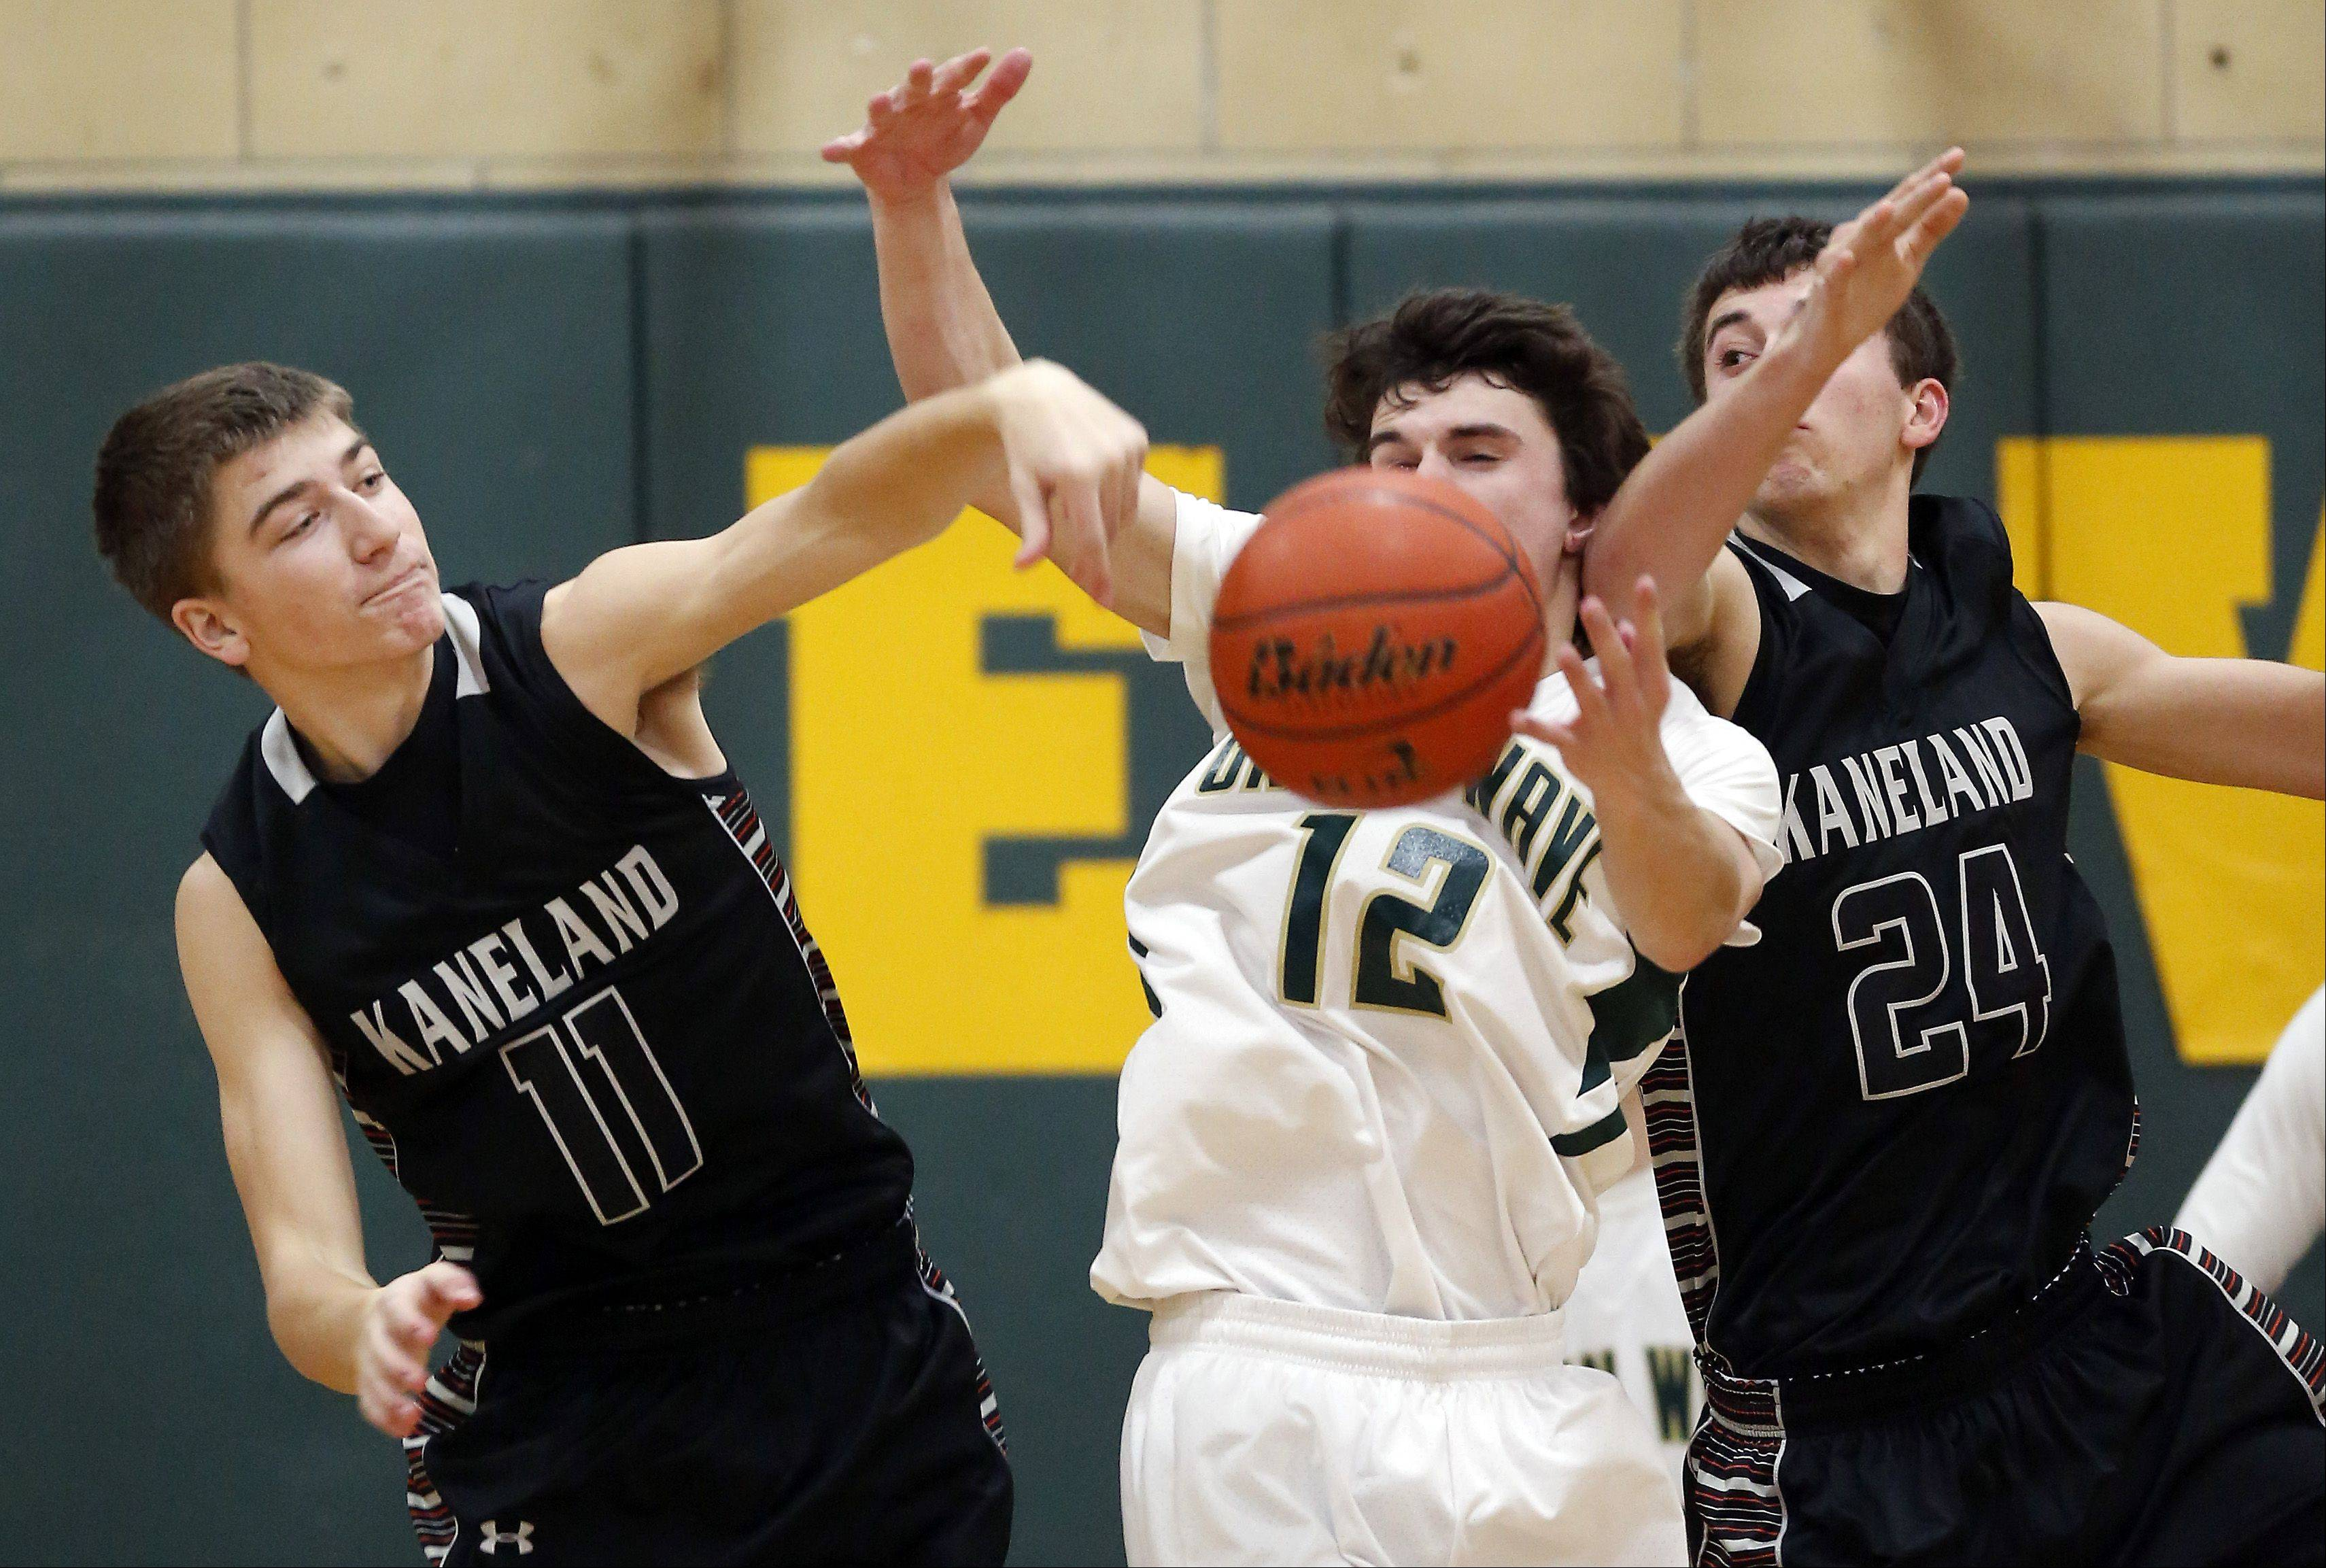 Images: St. Edward vs. Kaneland boys basketball